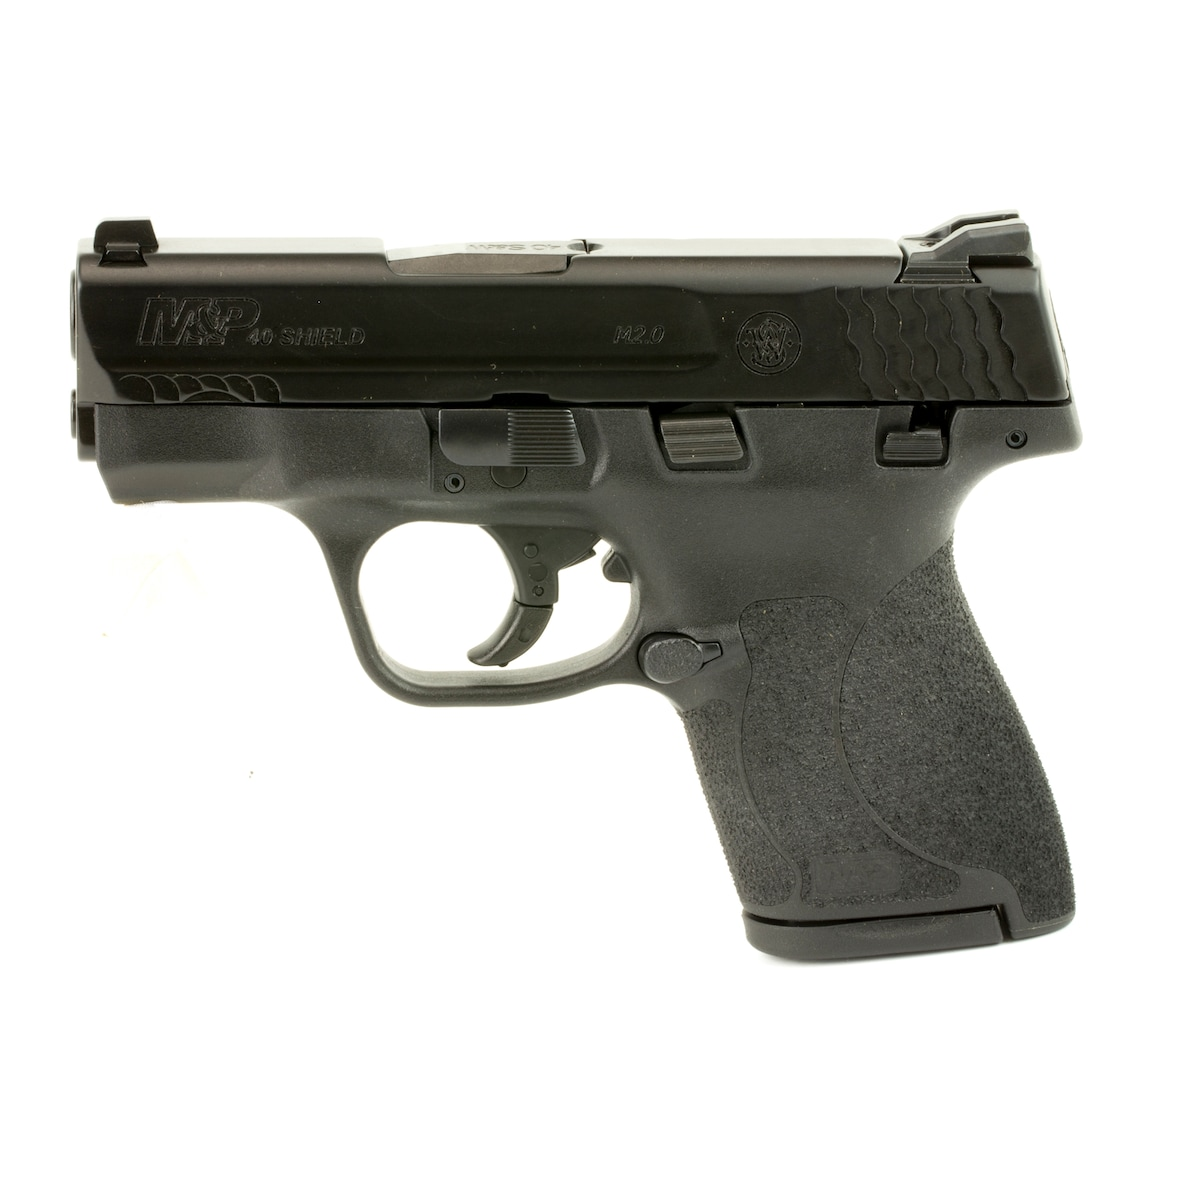 SMITH & WESSON M&P 40 Shield M 2.0 Manual Thumb Safety